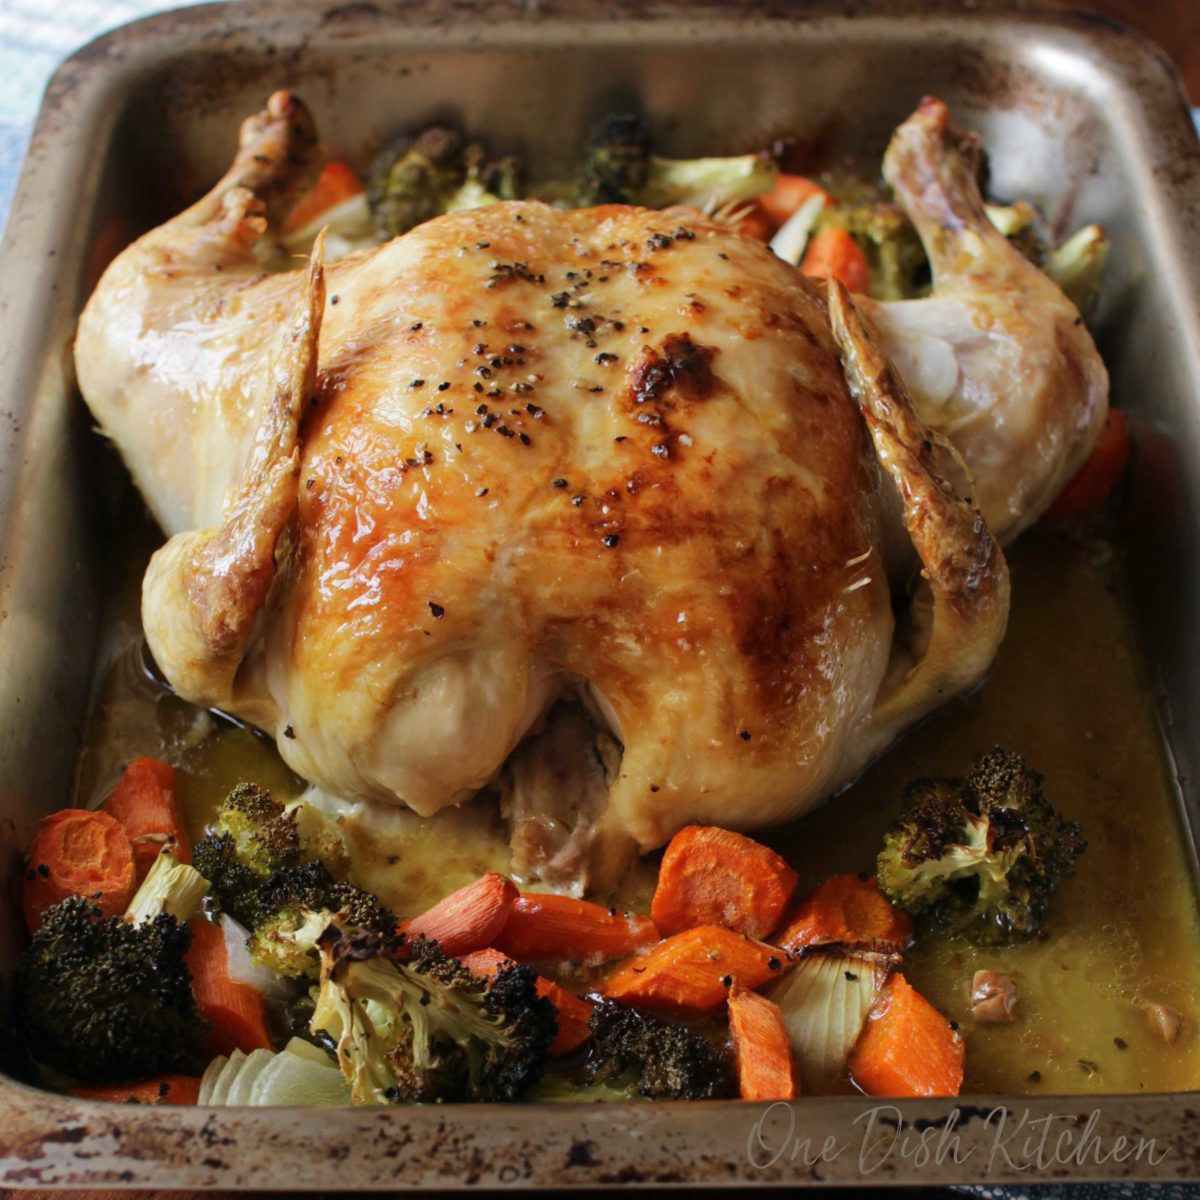 A whole chicken in a roasting pan surrounded by broccoli, sliced carrots, and sliced onions